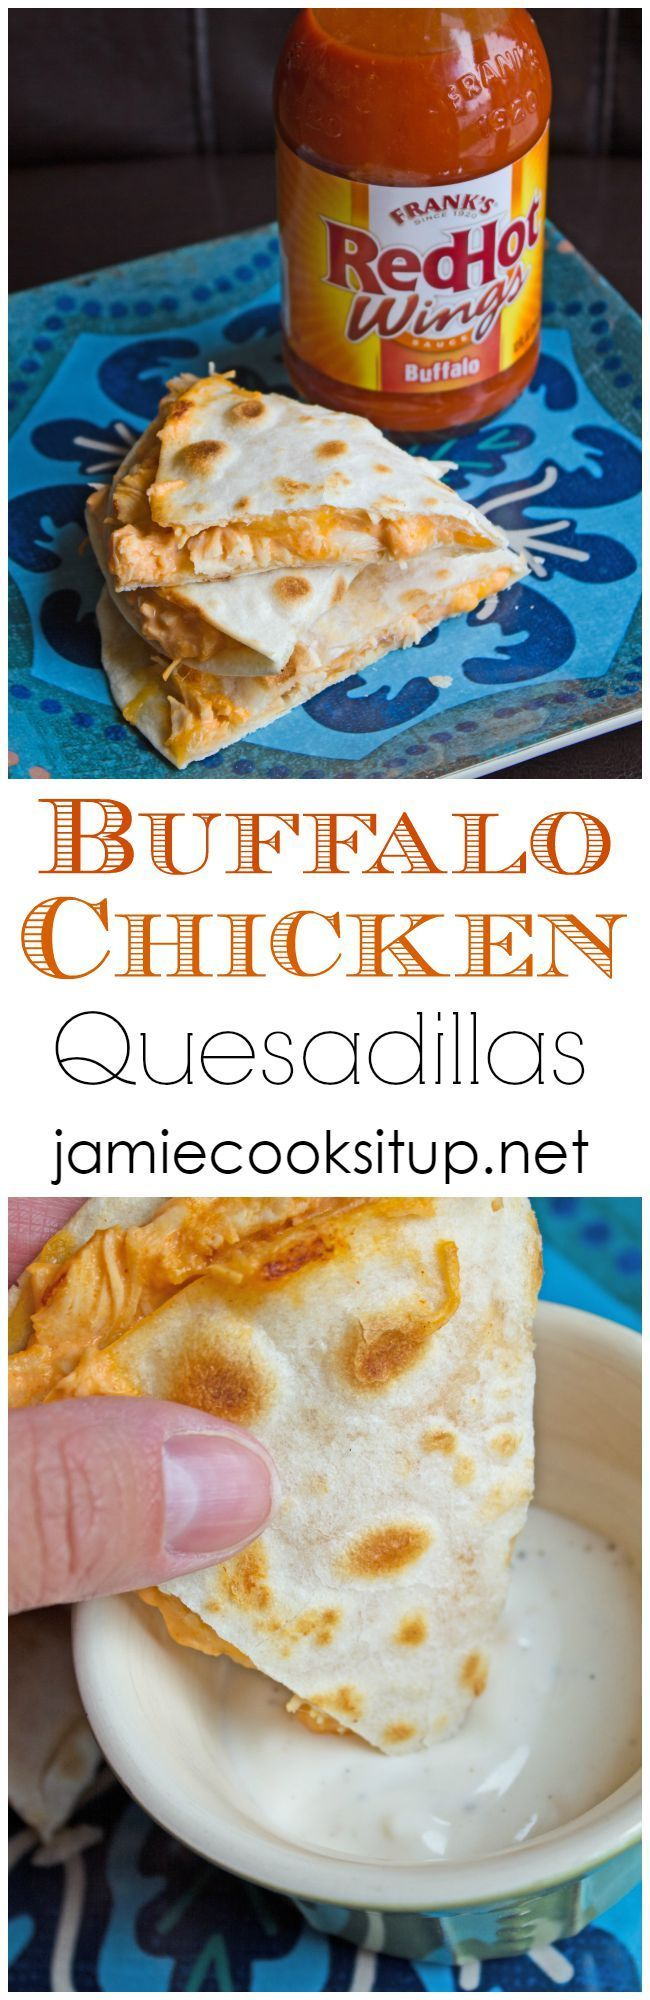 Buffalo Chicken Quesadillas from Jamie Cooks It Up! You can make these easy quesadillas in about 15 minutes. Perfect for a quick lunch or dinner.